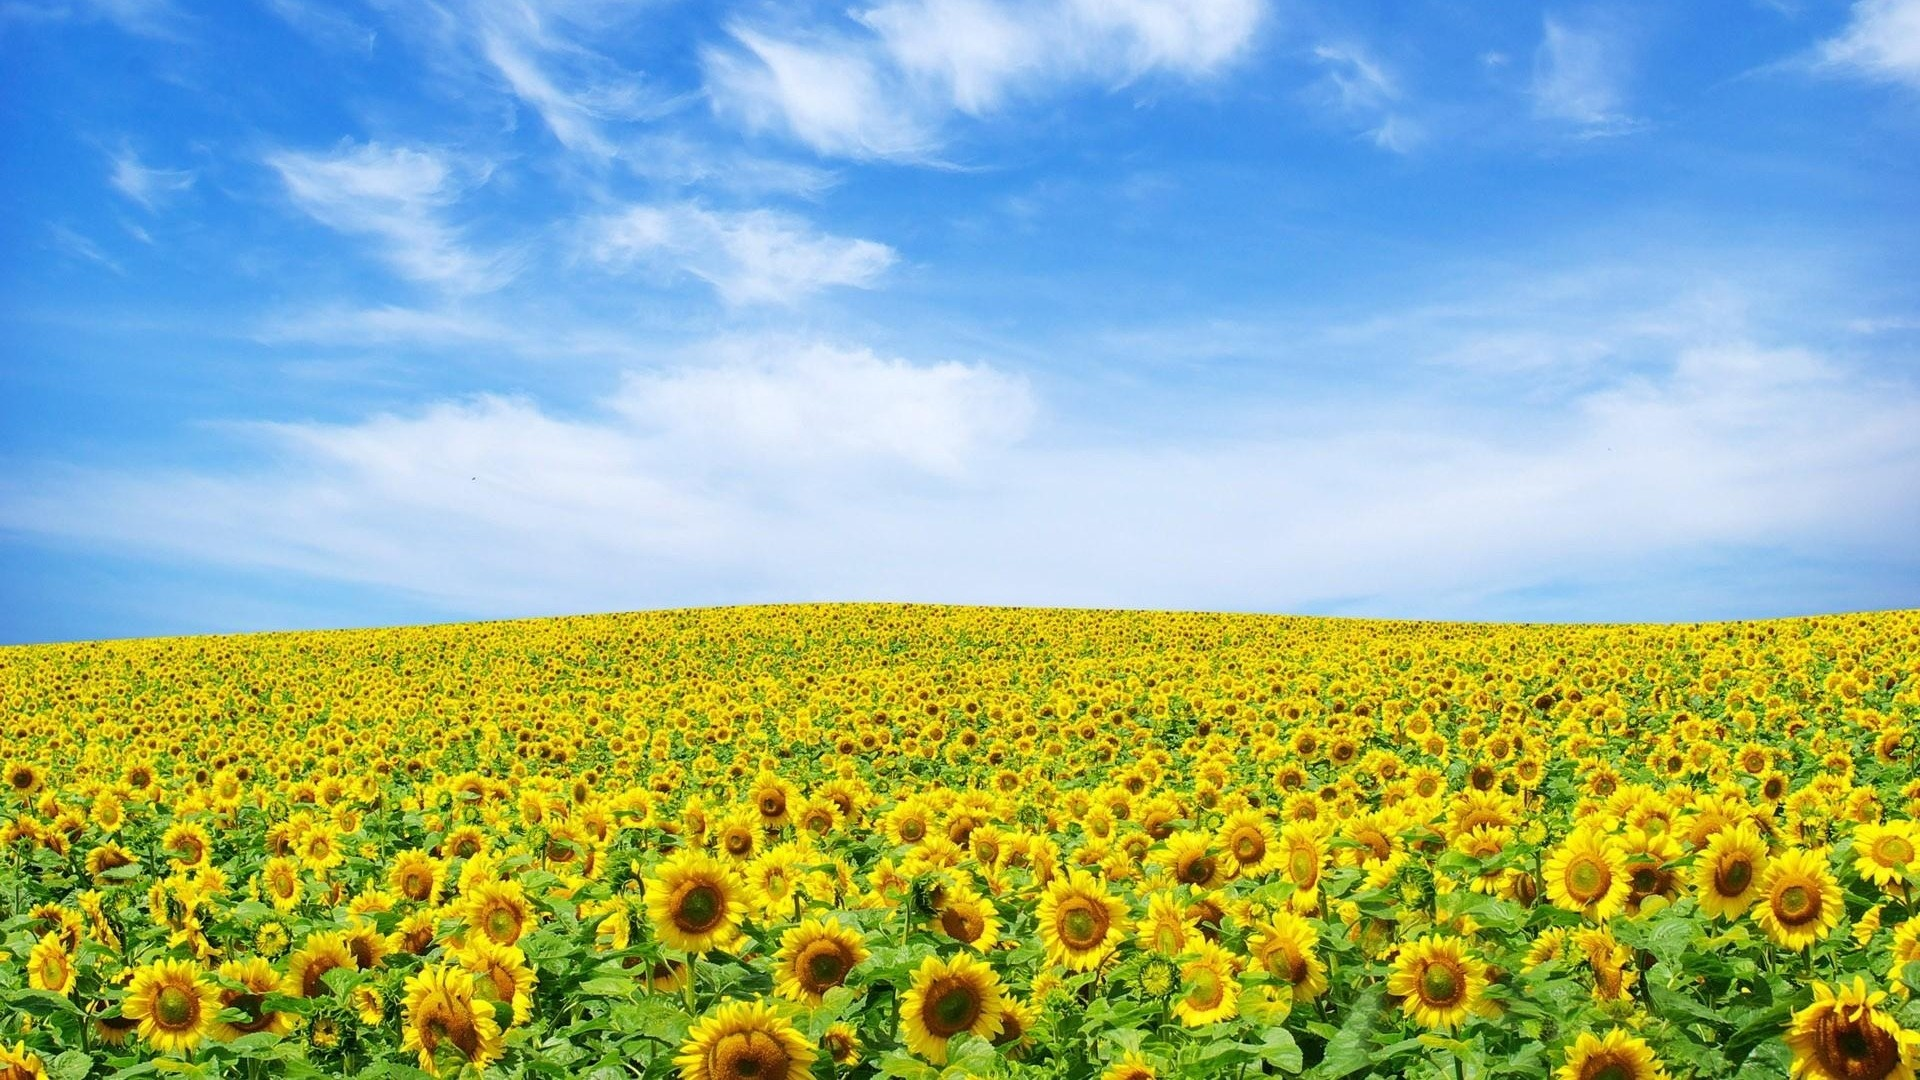 1920x1080 ... Background Full HD 1080p.  Wallpaper sunflowers, field, sky,  summer, clouds, nature